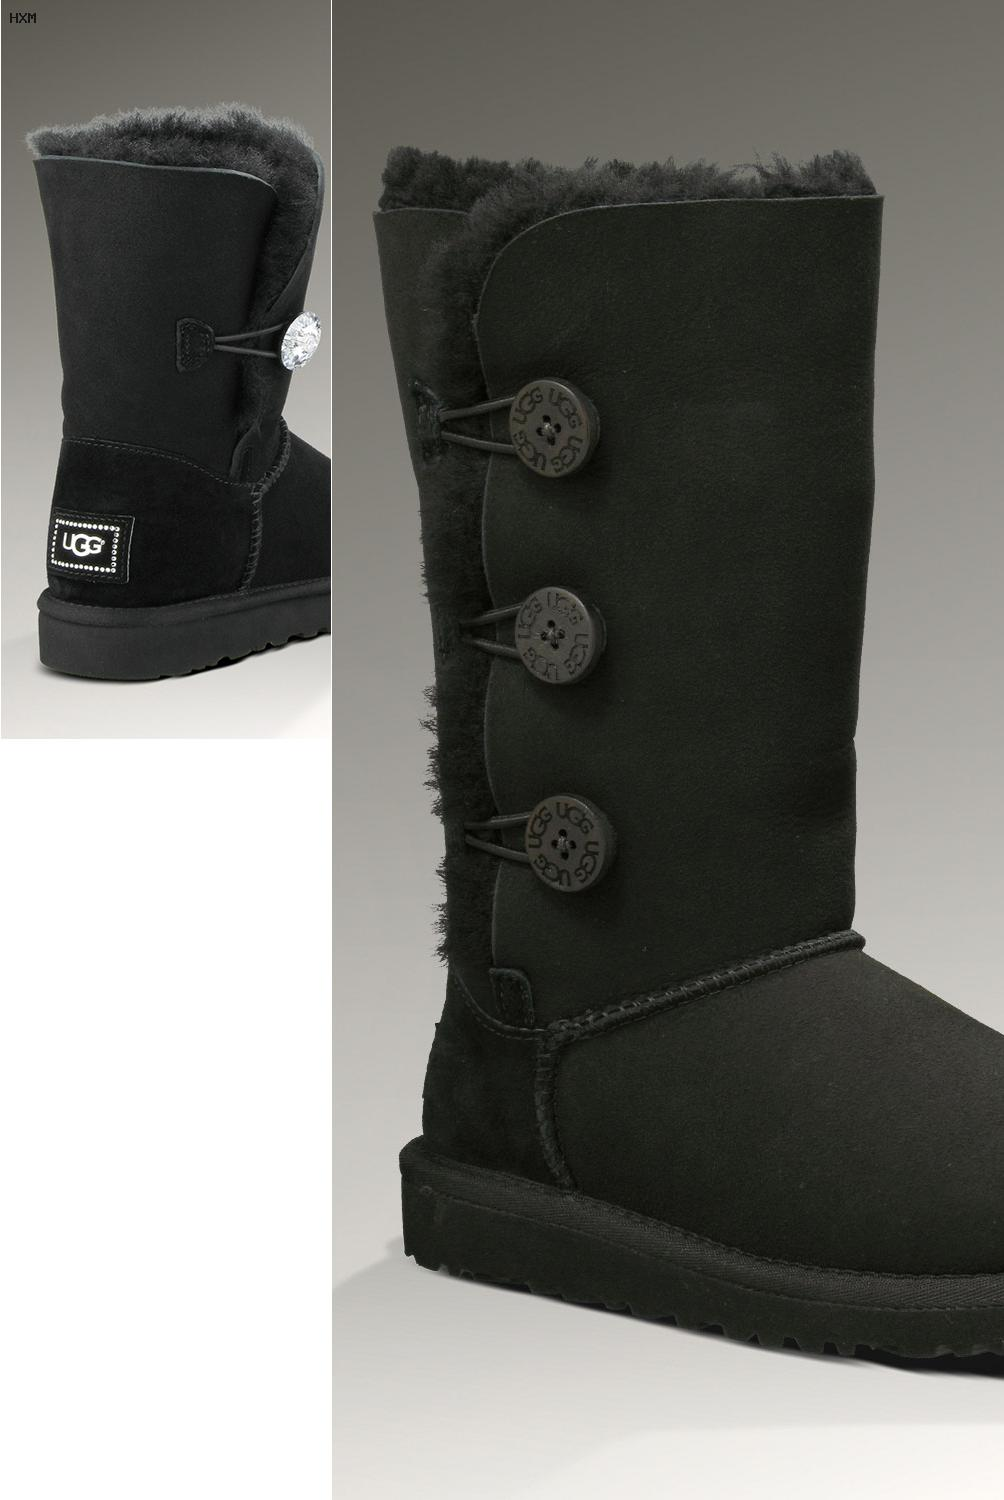 bon de reduction site ugg